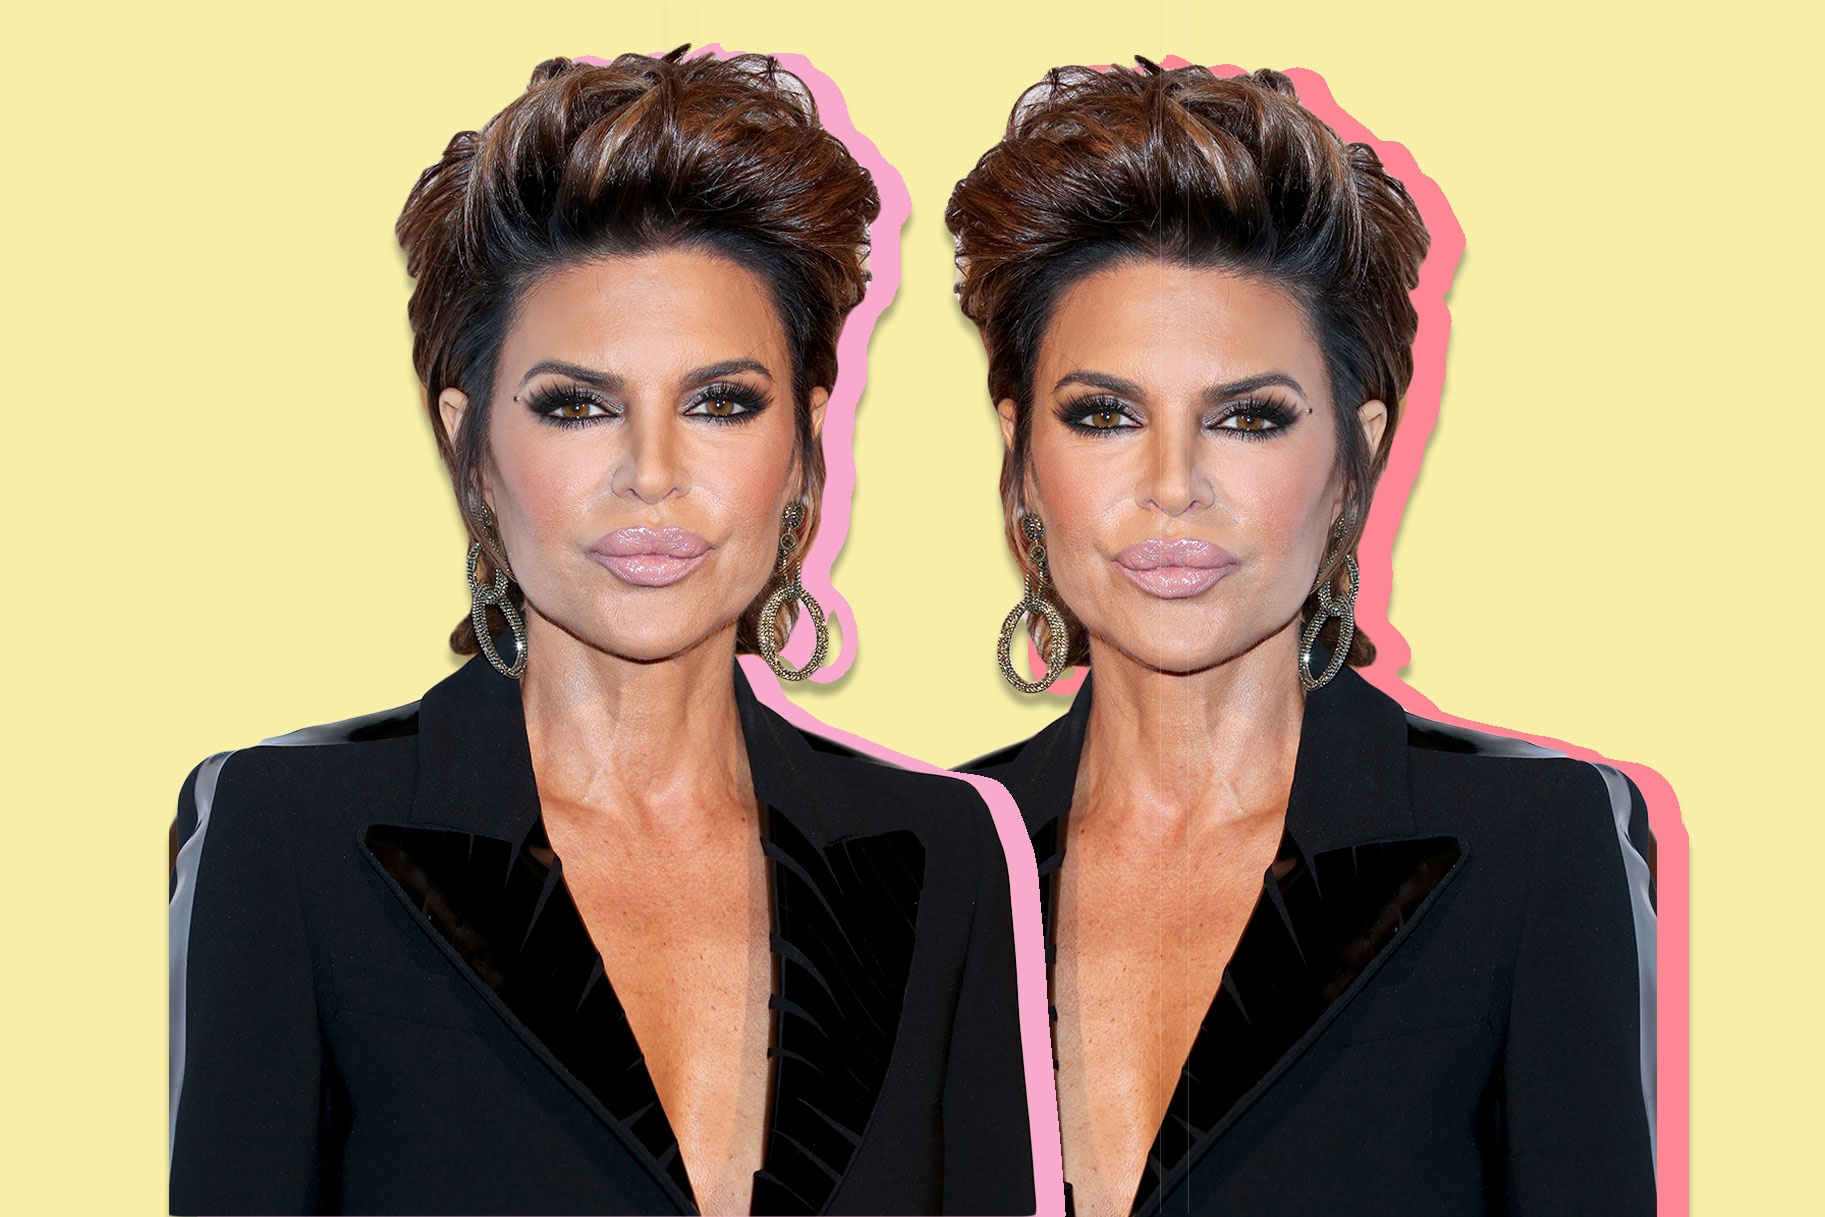 Lisa Rinna s New Look Is Seriously Jaw-Dropping fd3857cb0